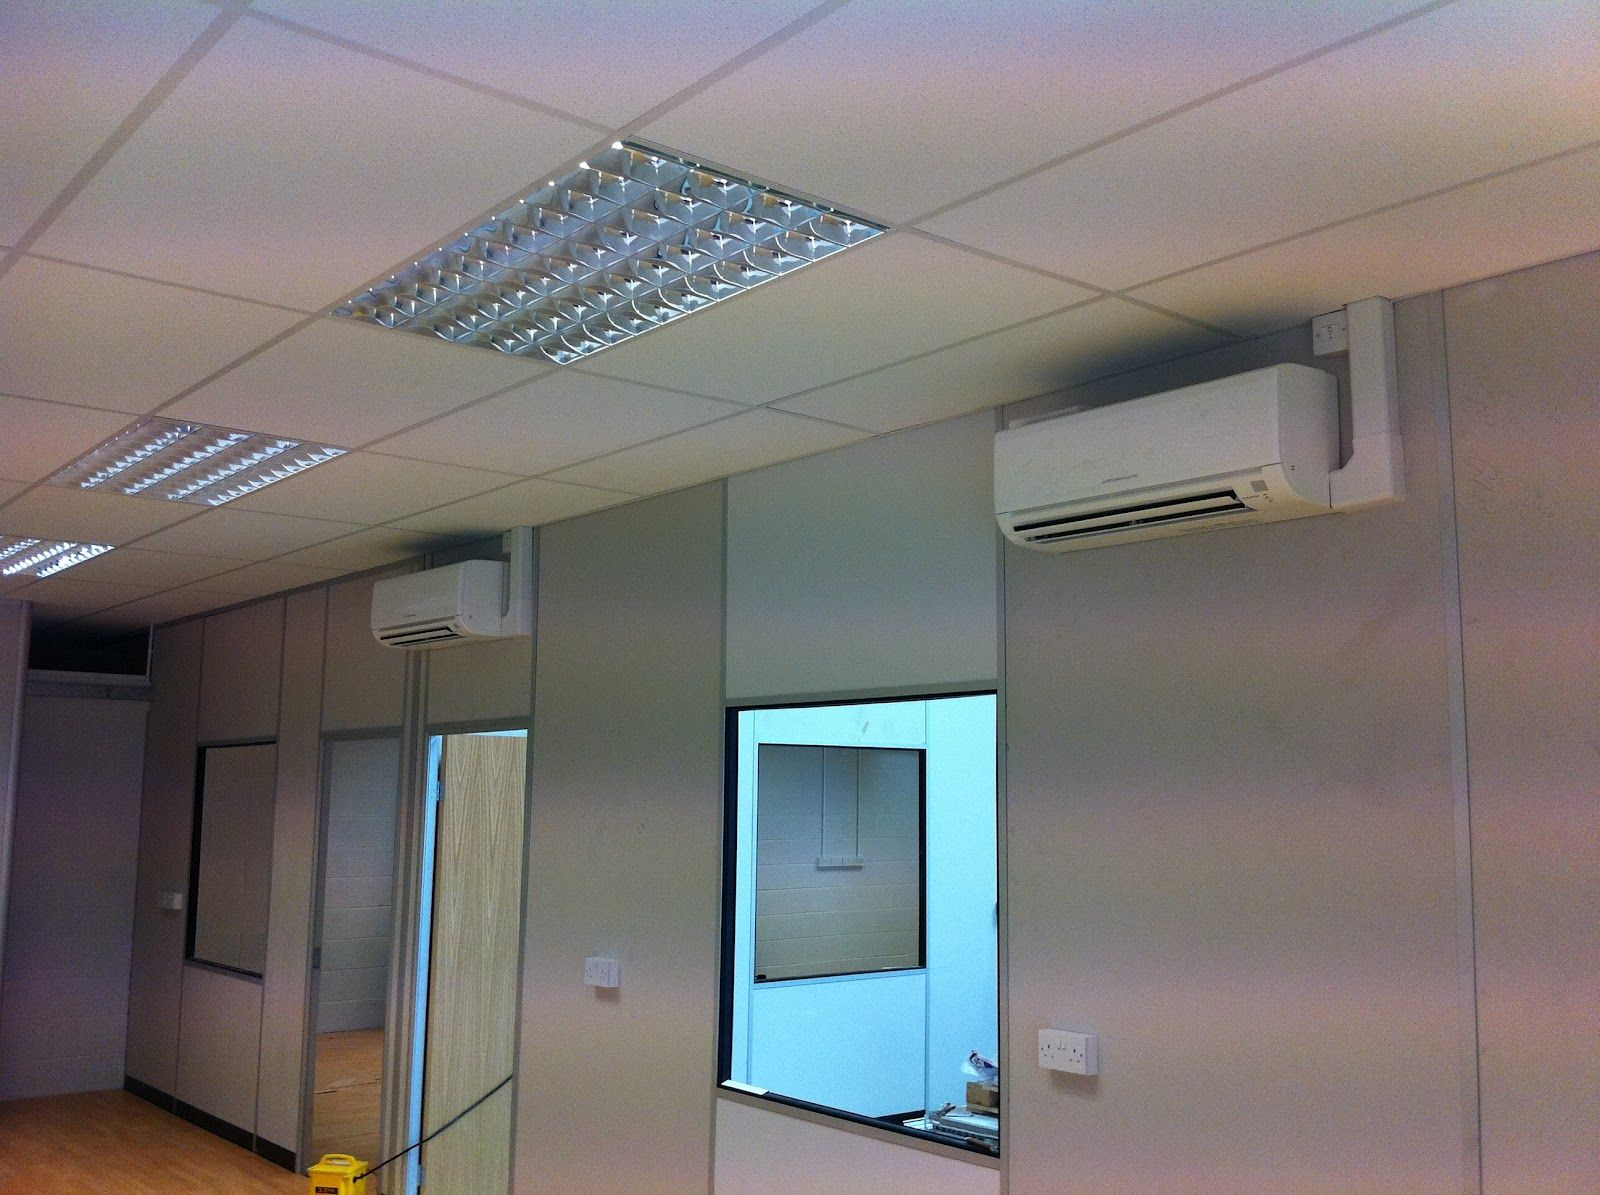 Two Mitsubishi Electric MSZGE35 3.5kW Wall Mounted